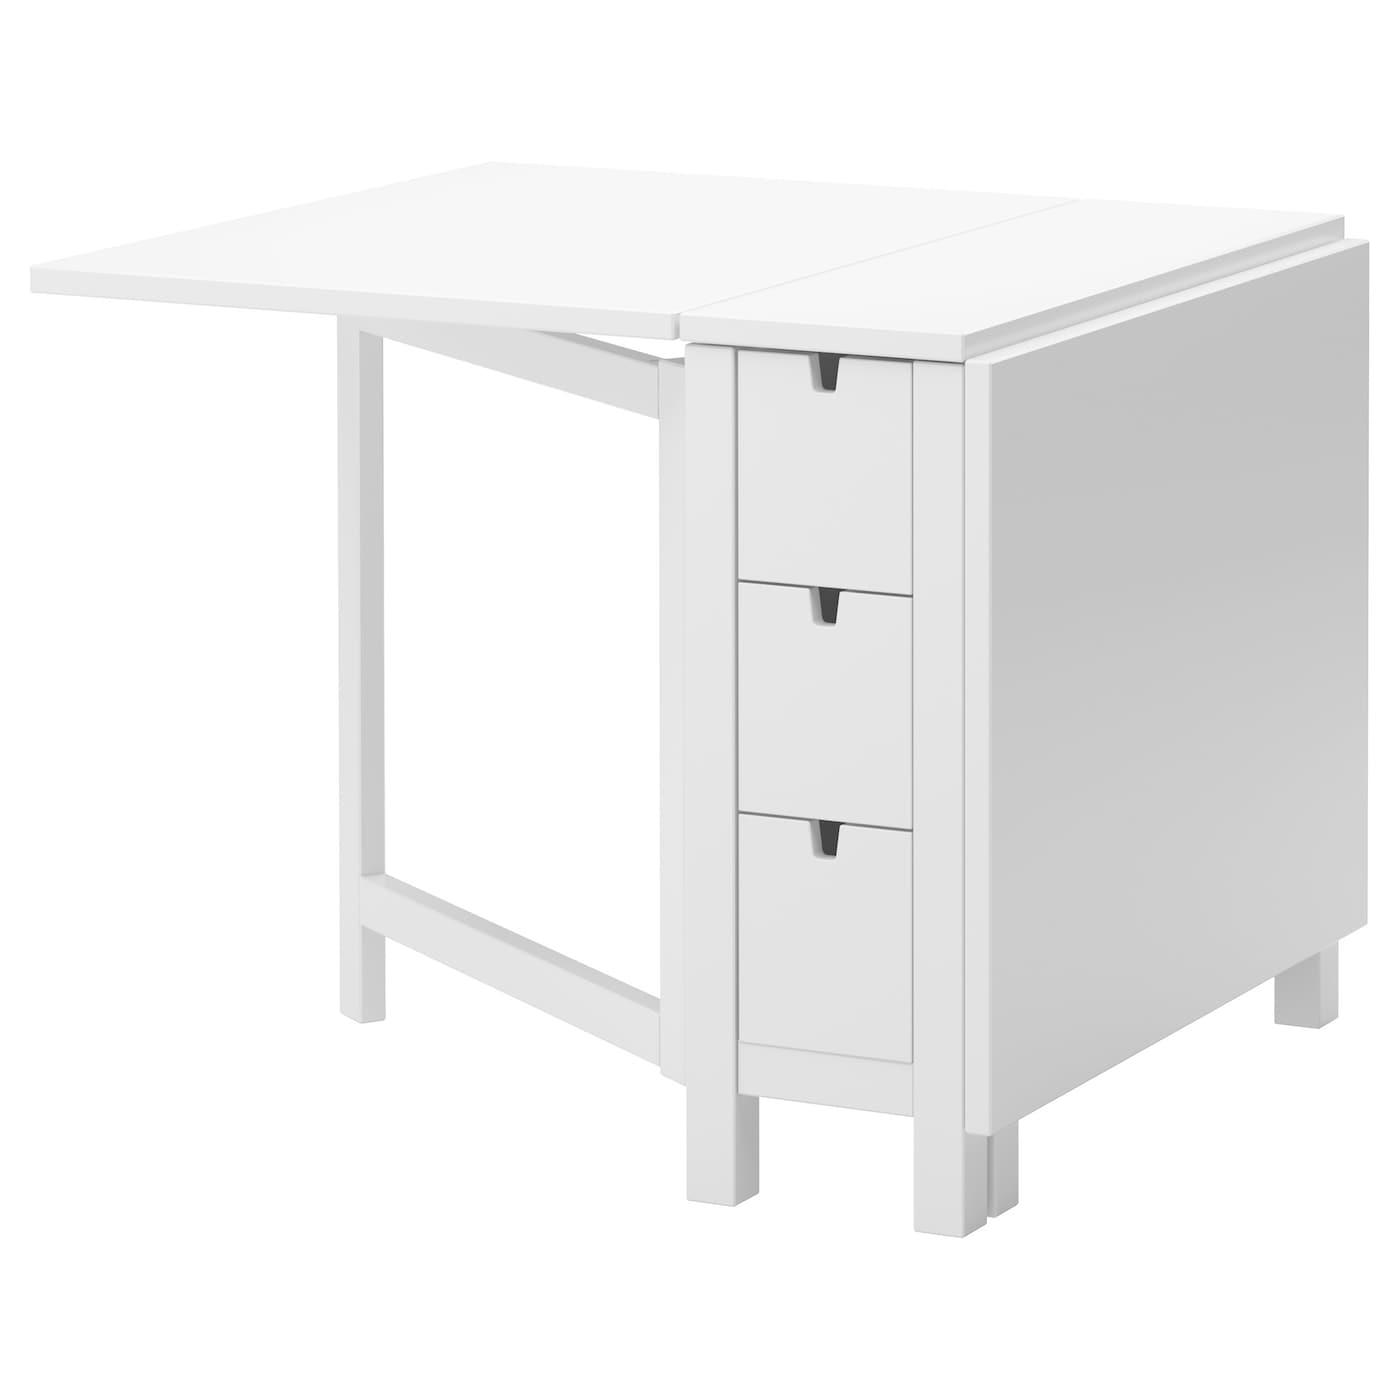 Norden gateleg table white 26 89 152x80 cm ikea - Ikea tavolo ribaltabile ...